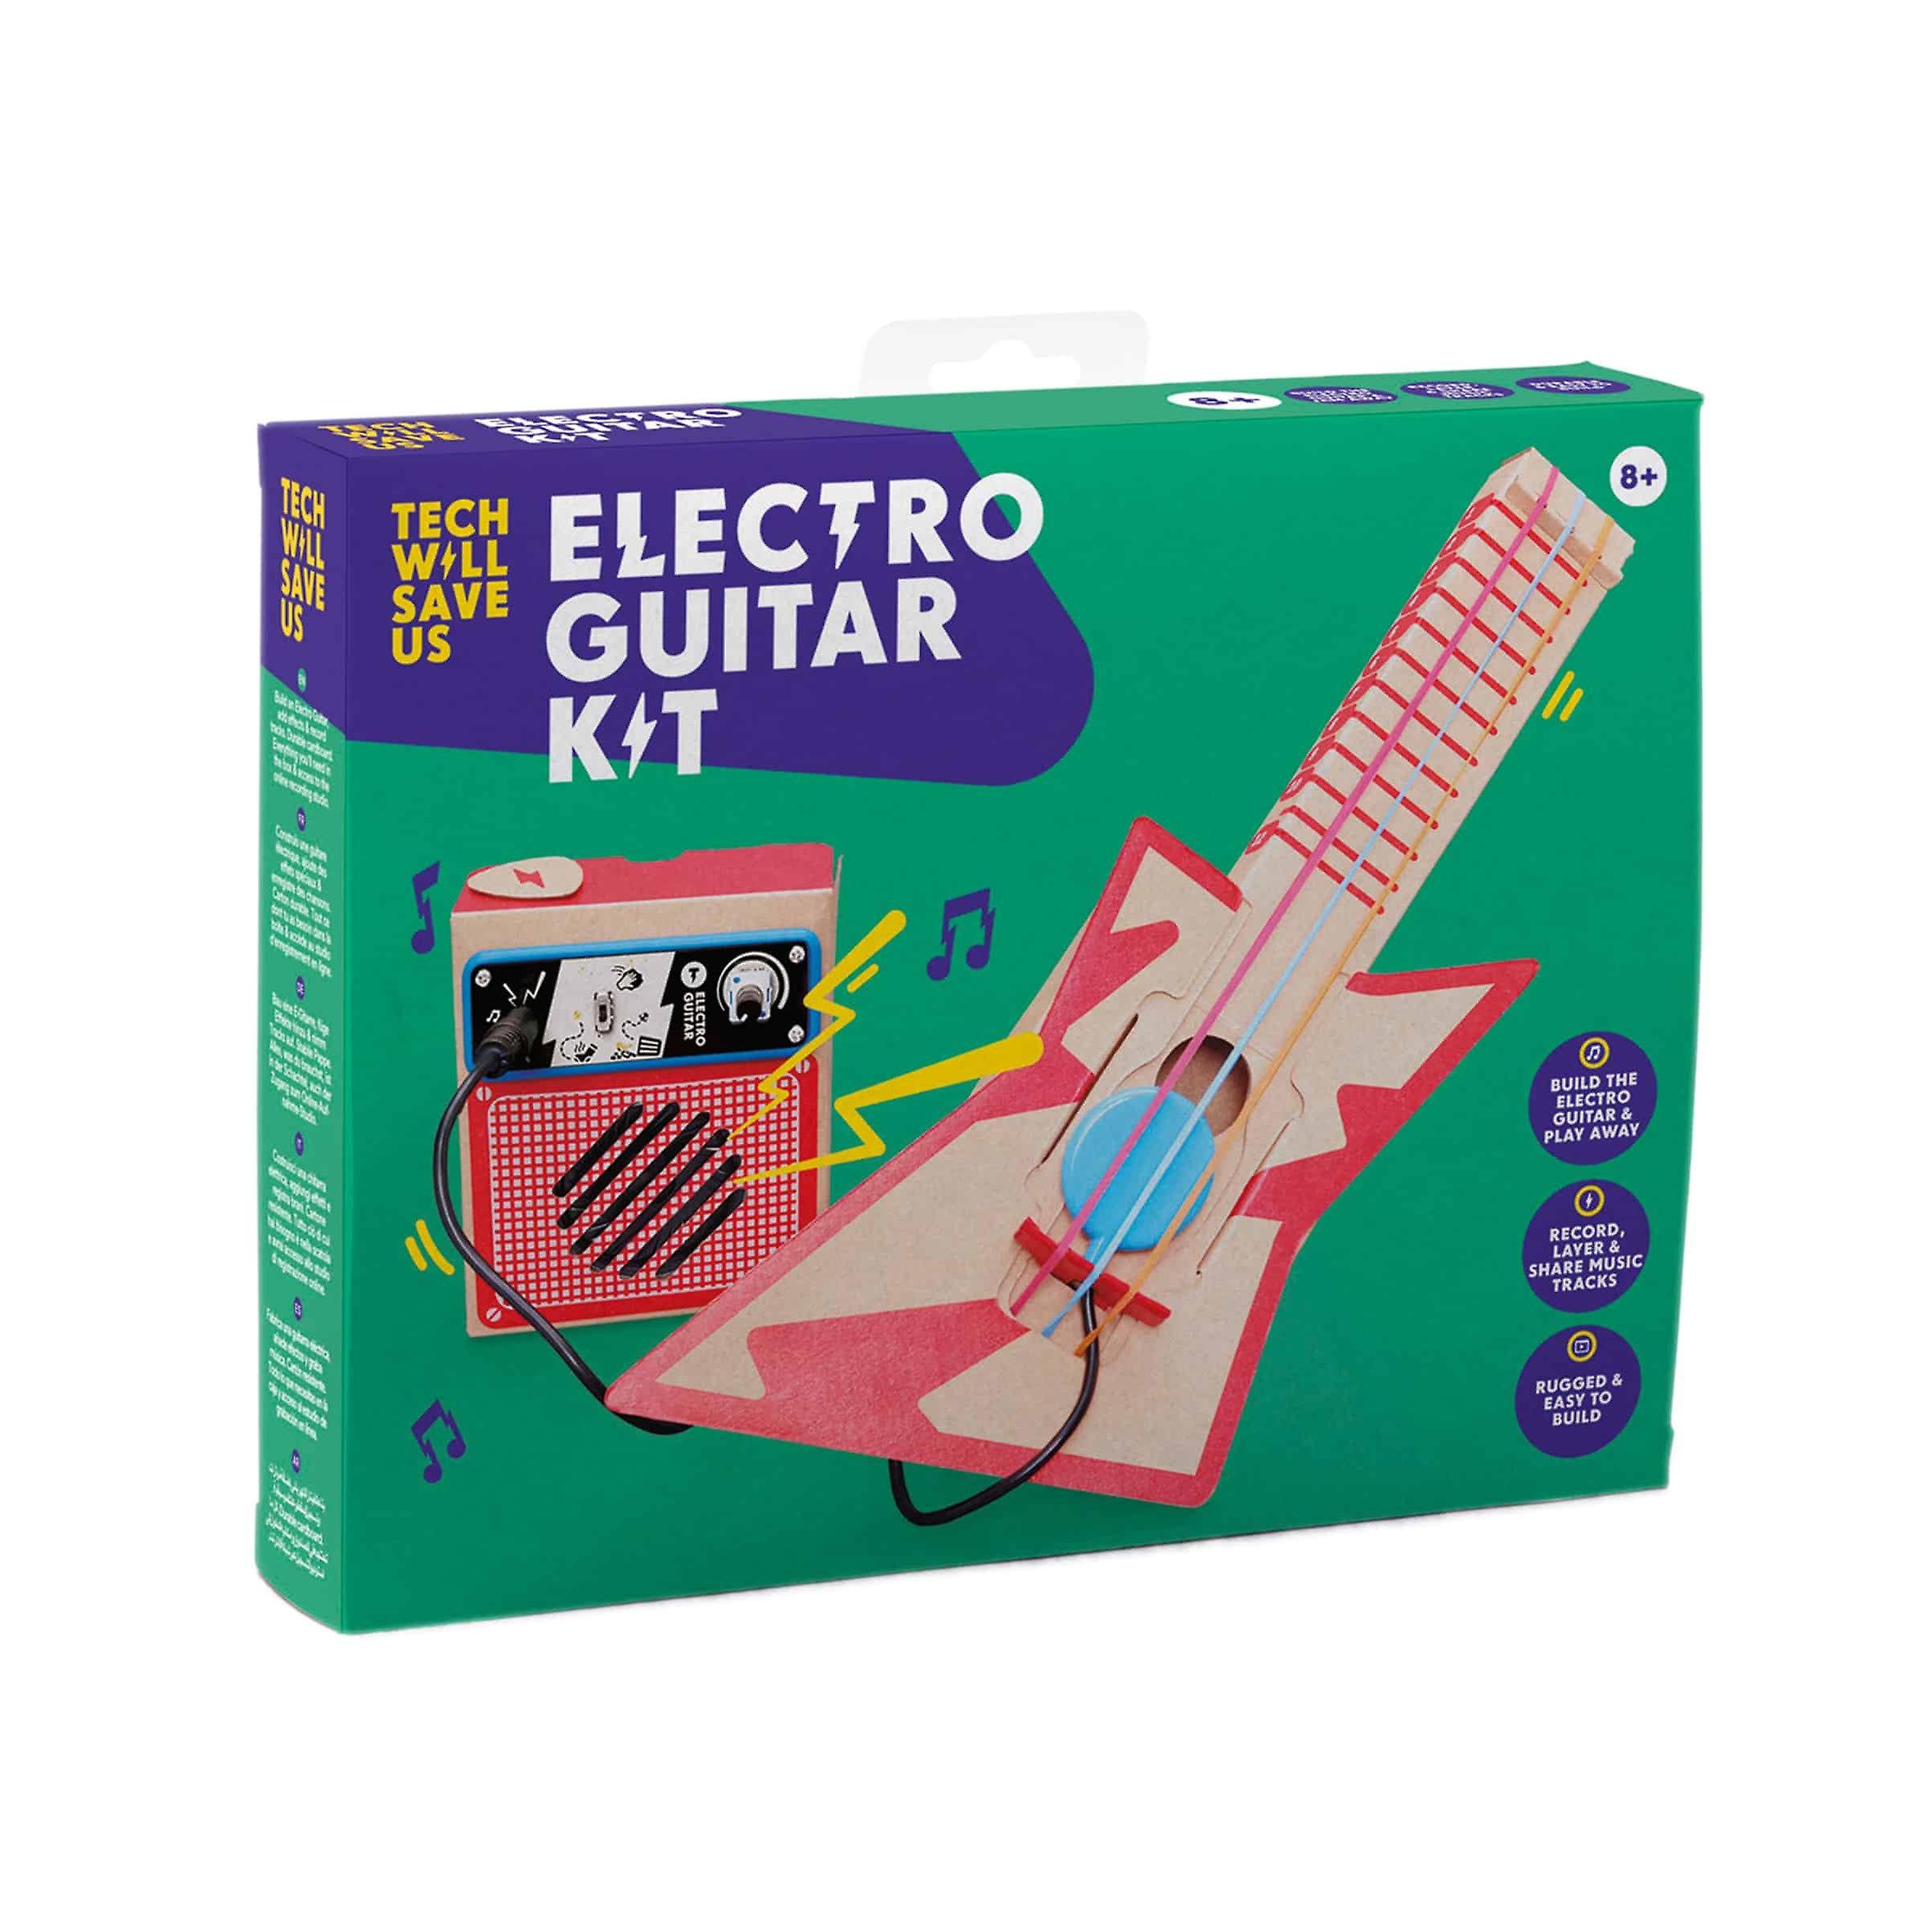 Tech Will Save Us Electro Guitar Kit | Educational Music Toy, Ages 8 and up